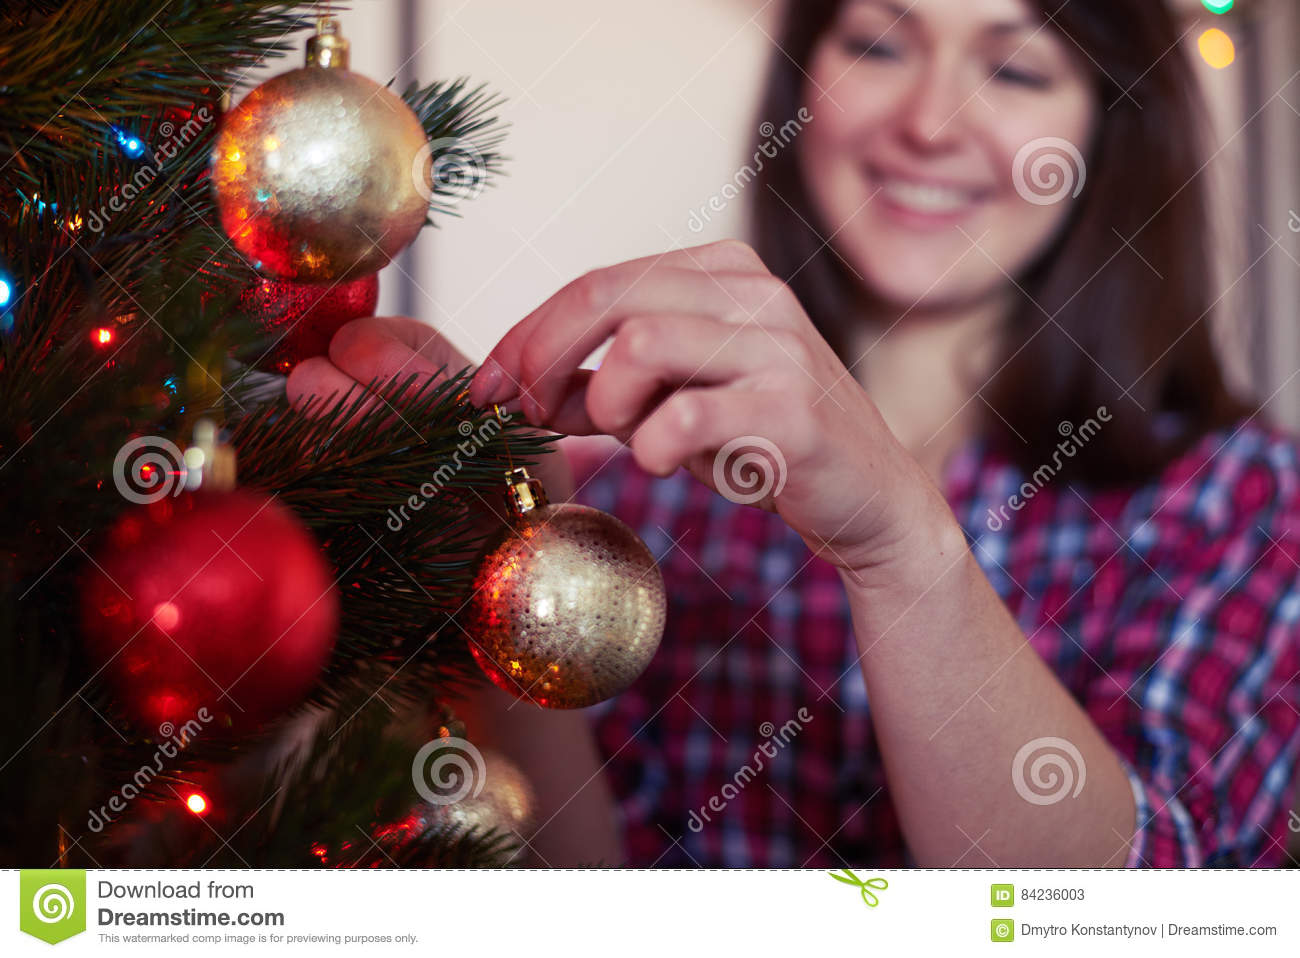 Rack shot on pleased girl decorating evergreen tree with balls